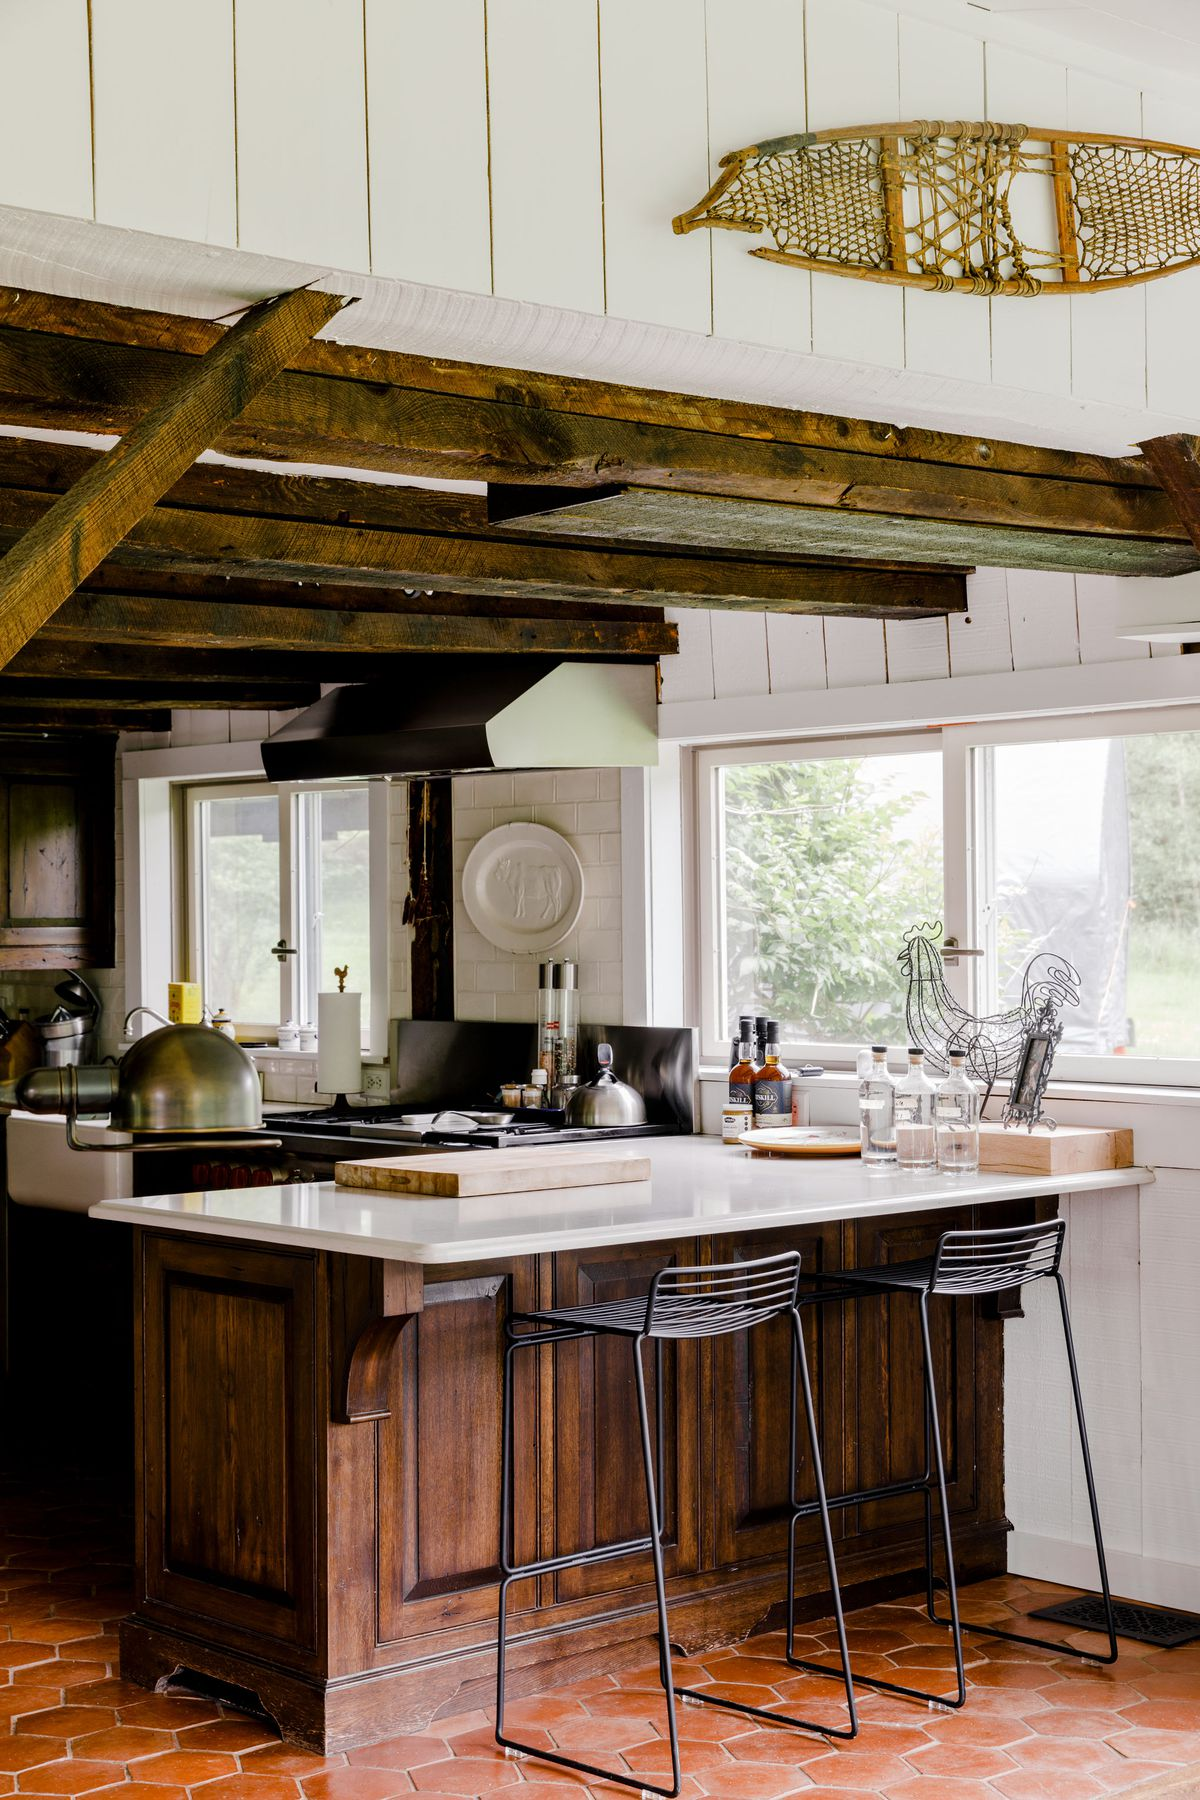 A kitchen with exposed wood beams on the ceiling, painted white walls, a counter, stools, and windows overlooking trees in a yard